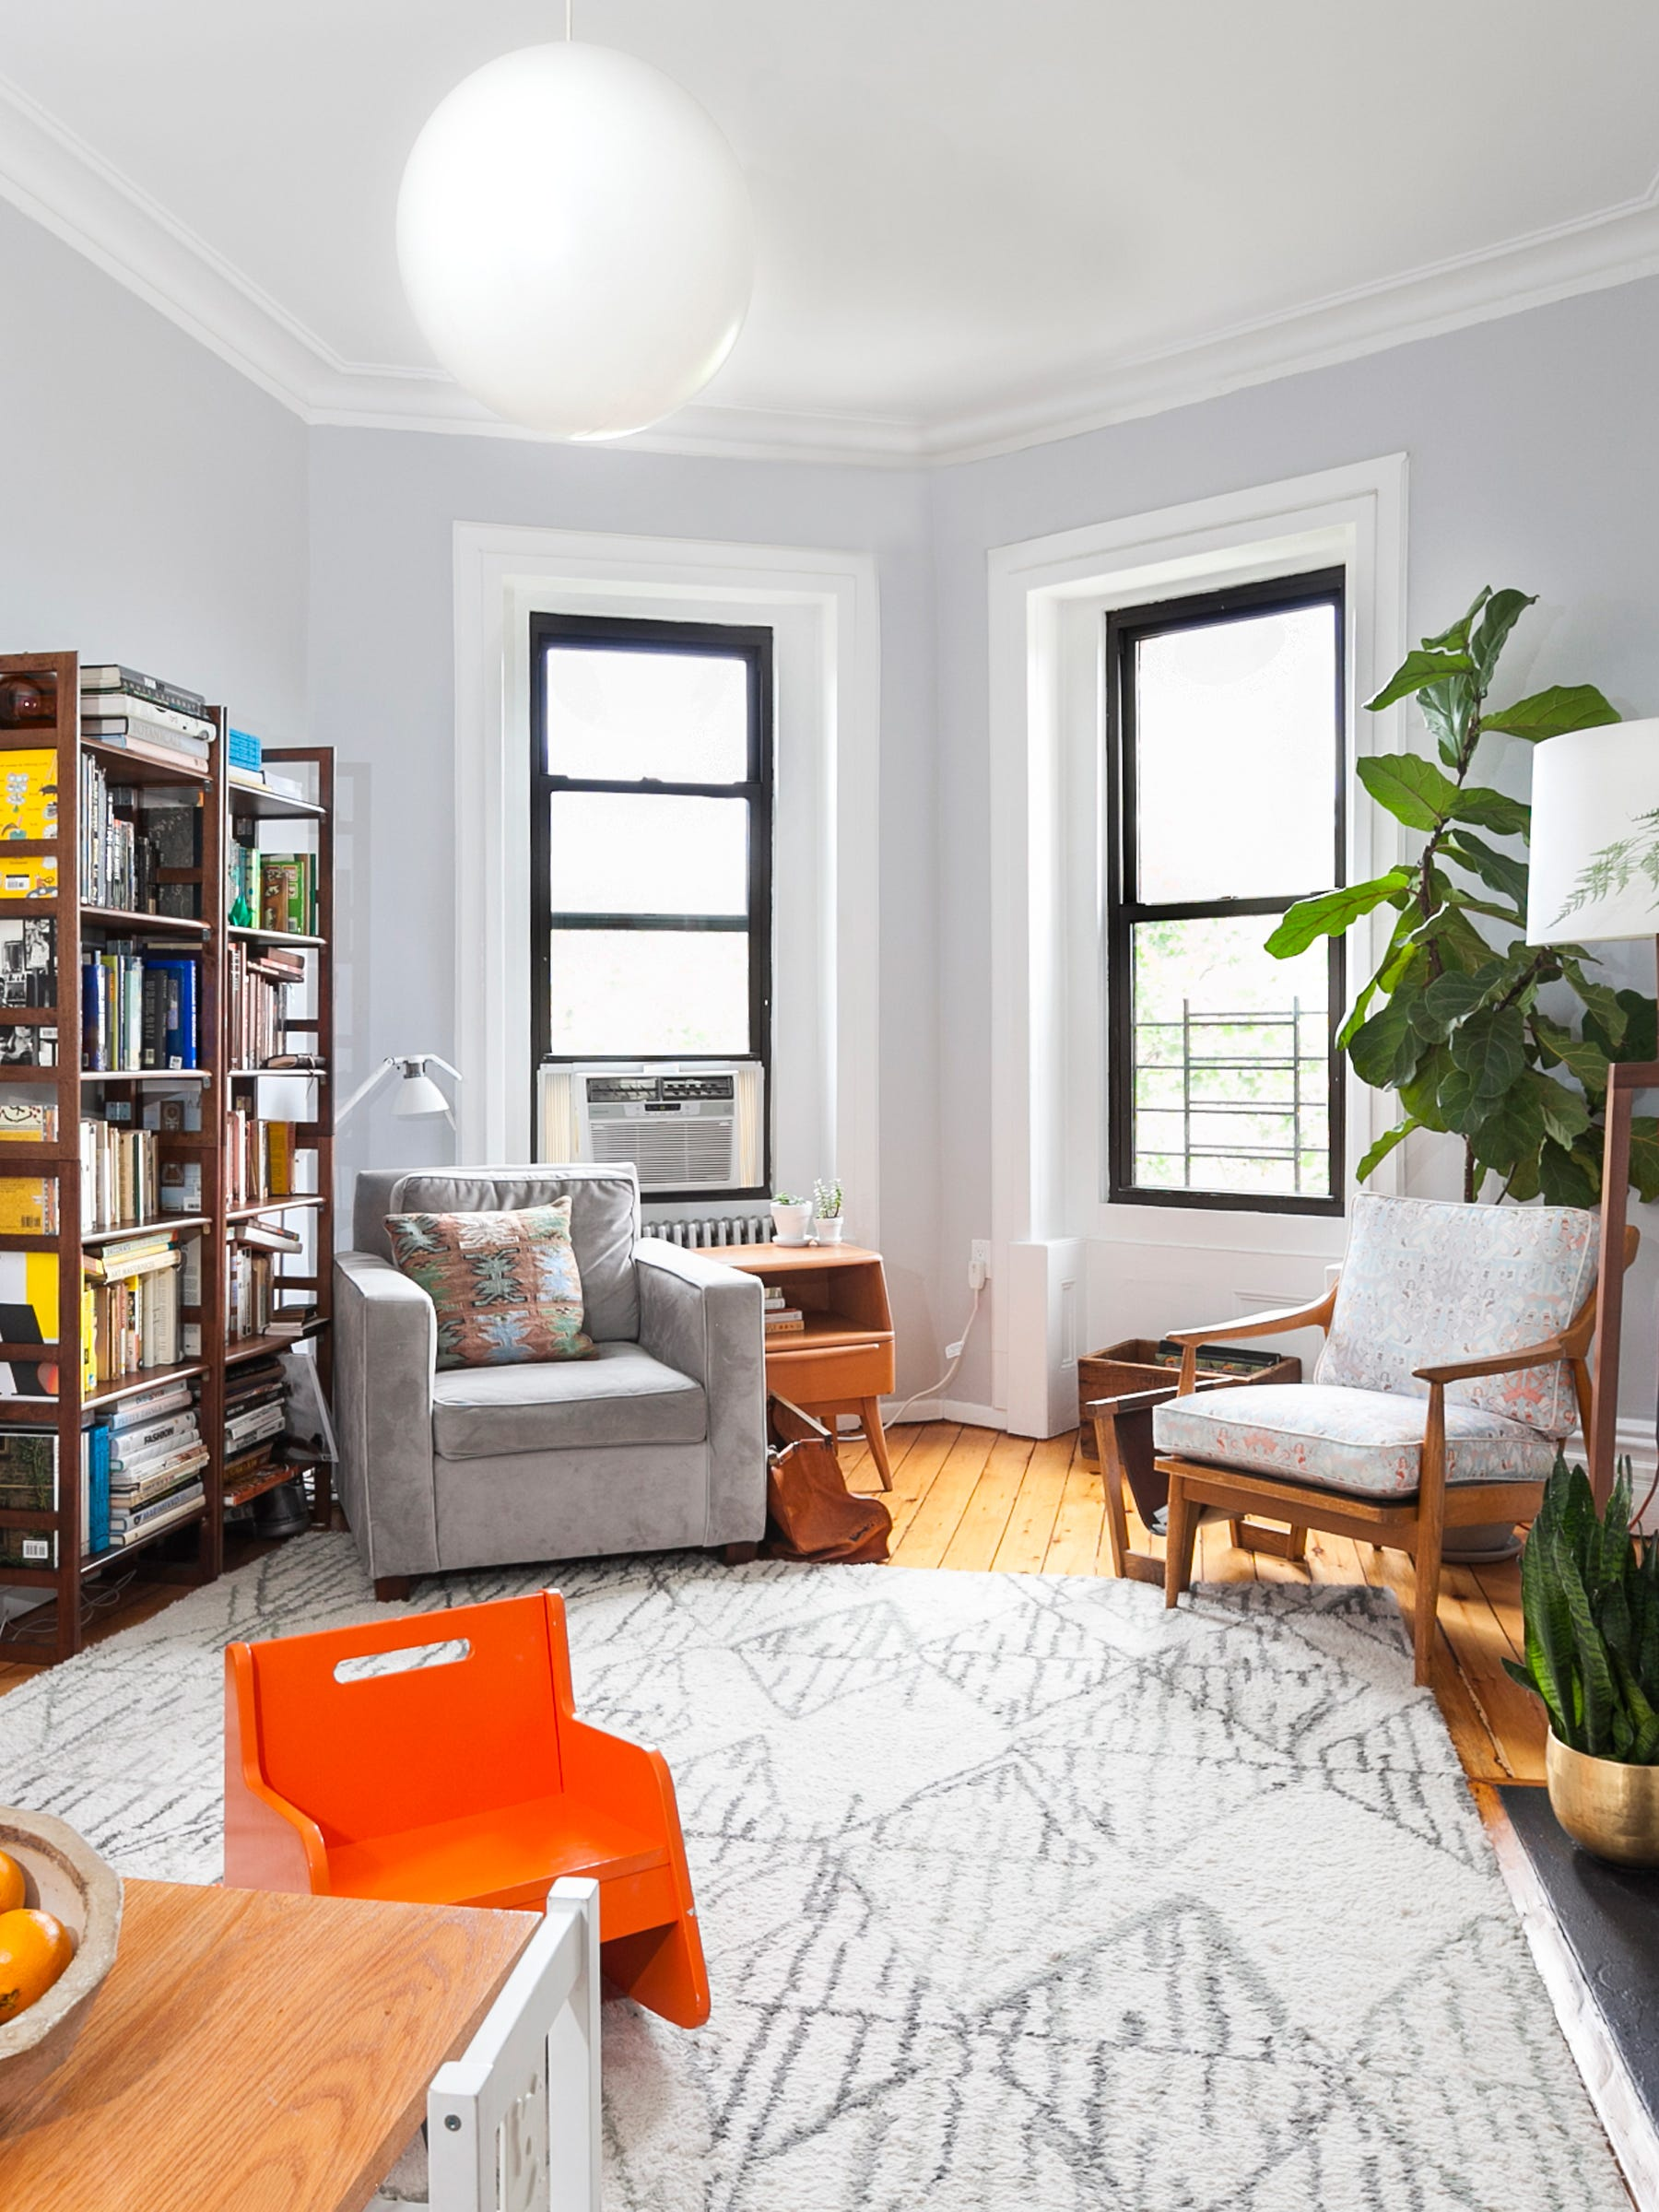 Apartment Rental Guide - Tips For Renting An Apartment